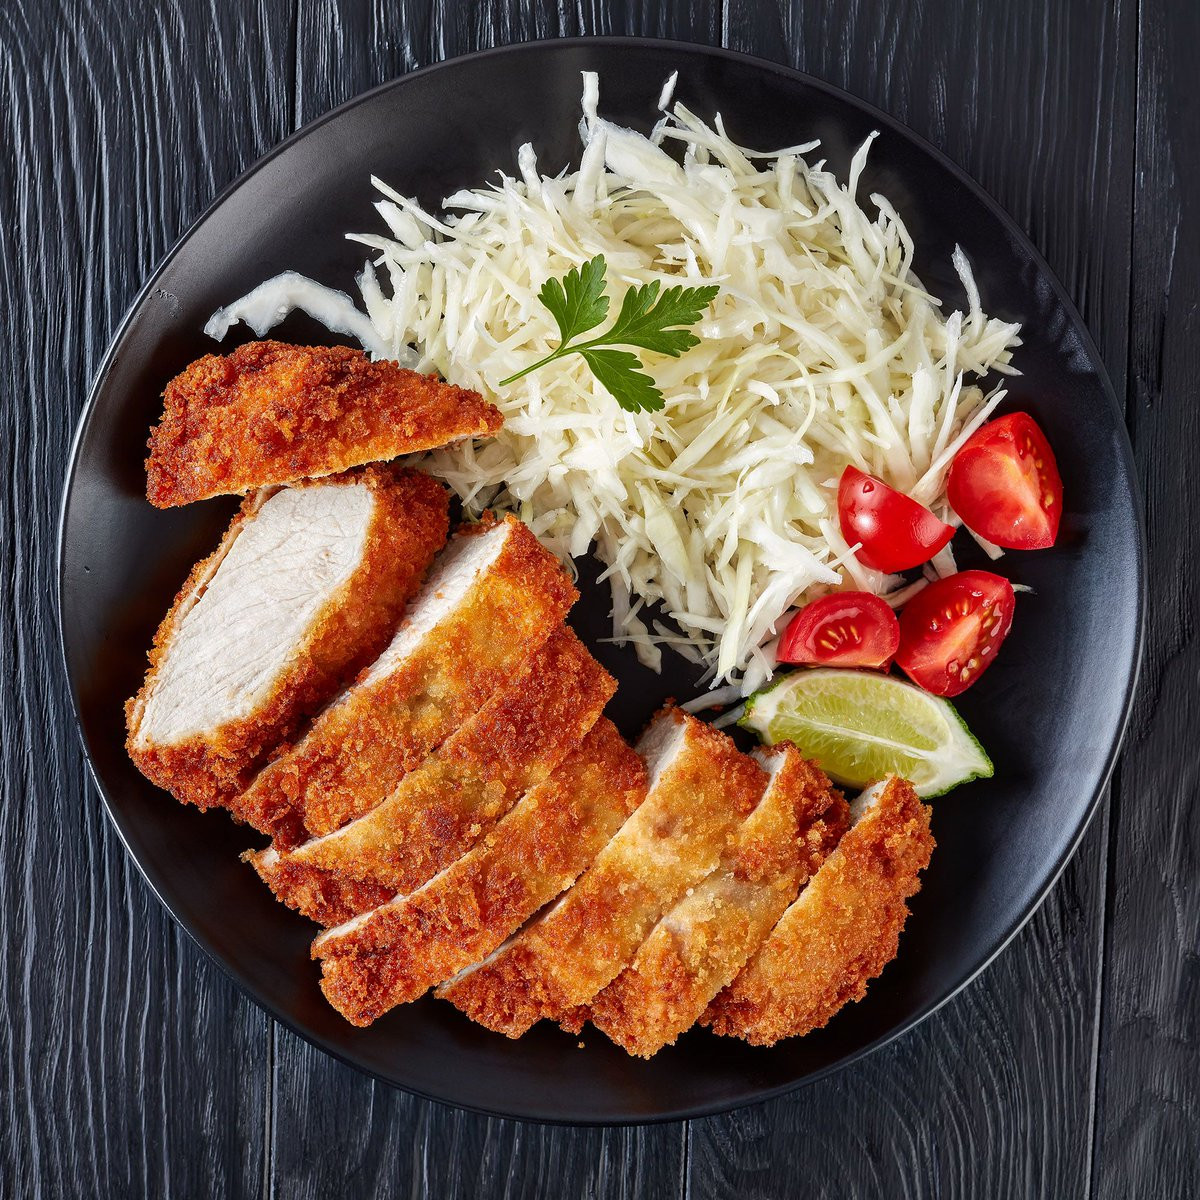 Why not host a Japanese inspired dinner party this #BankHoliday? Our national trainer Jo reveals five of her favourite dishes you can recreate in the comfort of your own home on our latest blog: buff.ly/3DcUZvW #recipeideas